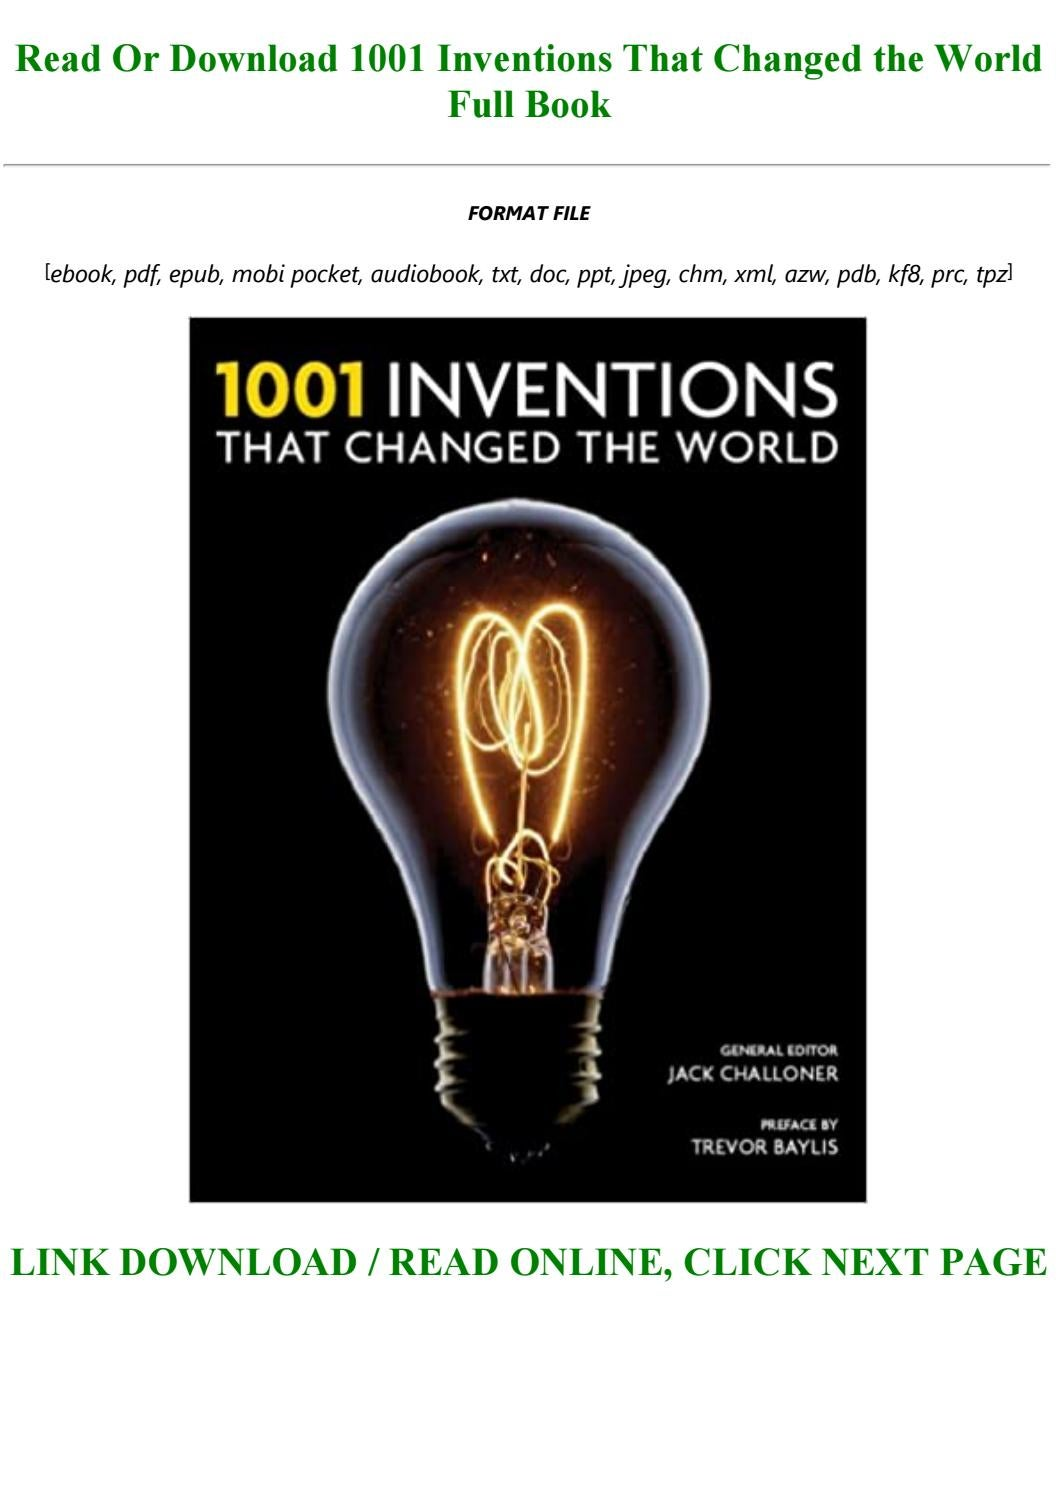 Download E B O O K 1001 Inventions That Changed The World Full Pdf Online By Lonnitzsche1o1 Issuu